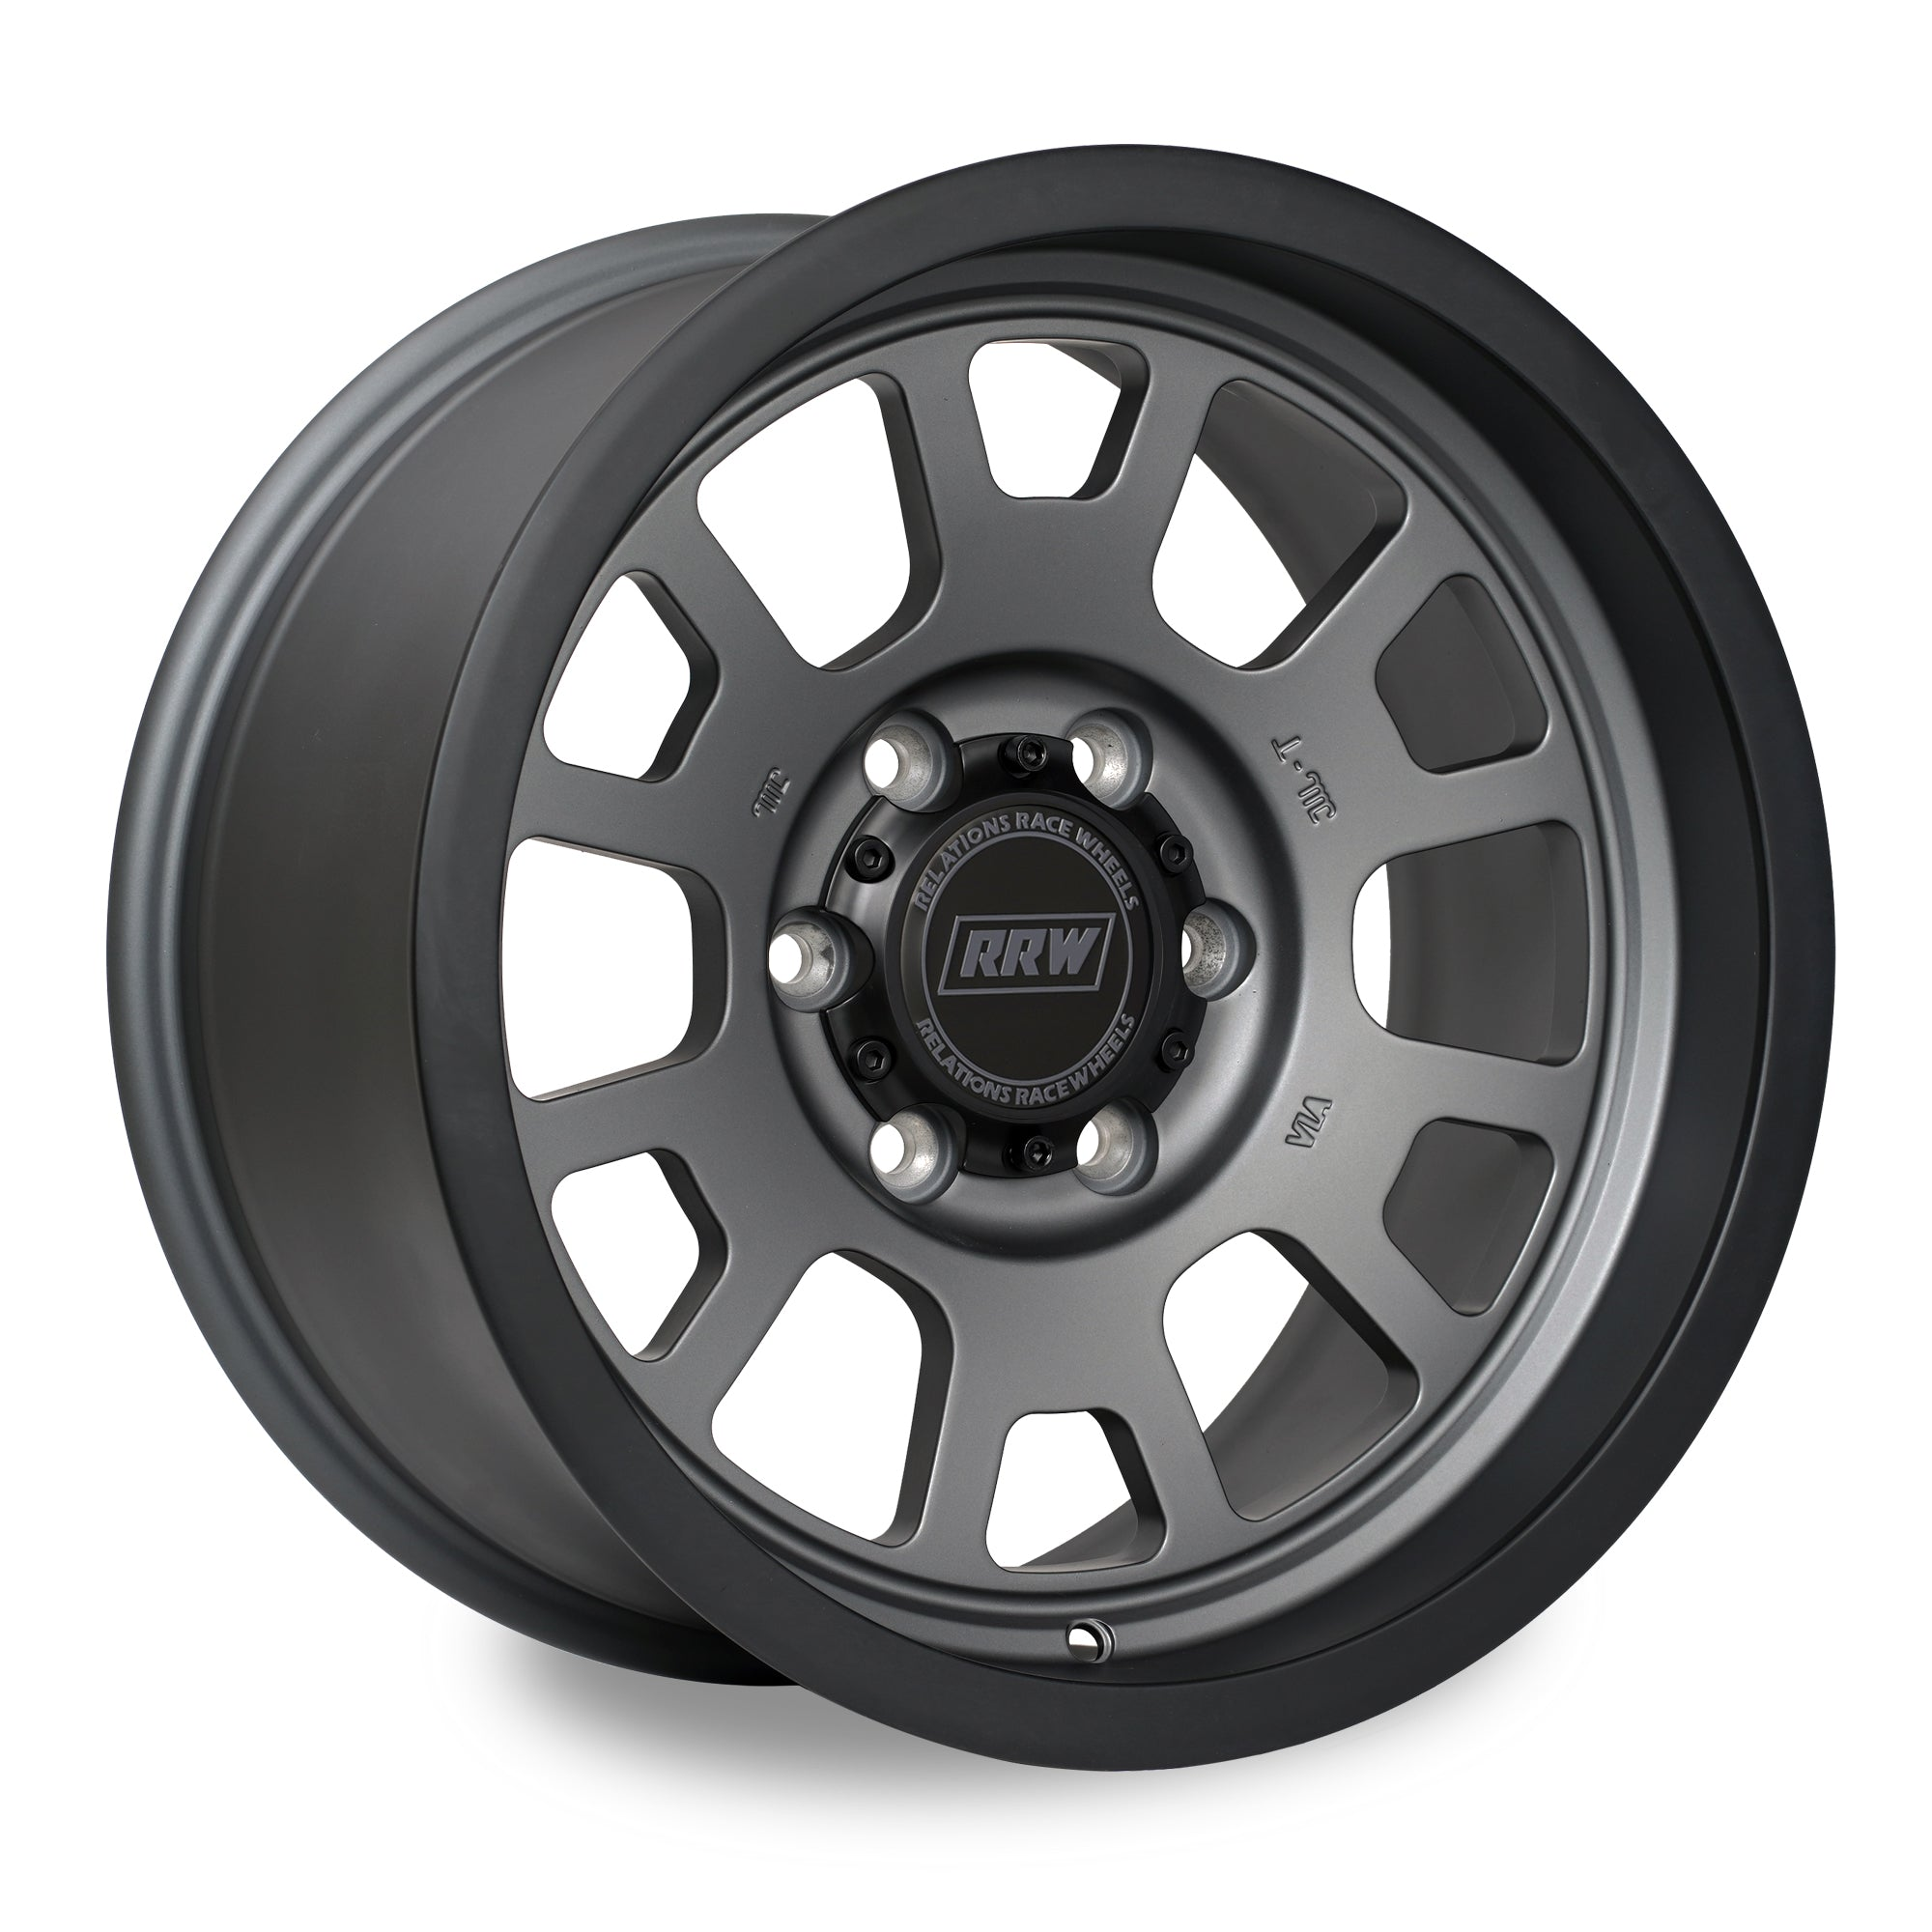 RR5-F 17x8.5 (6x135) Forged Monoblock | Ford F150 / Raptor